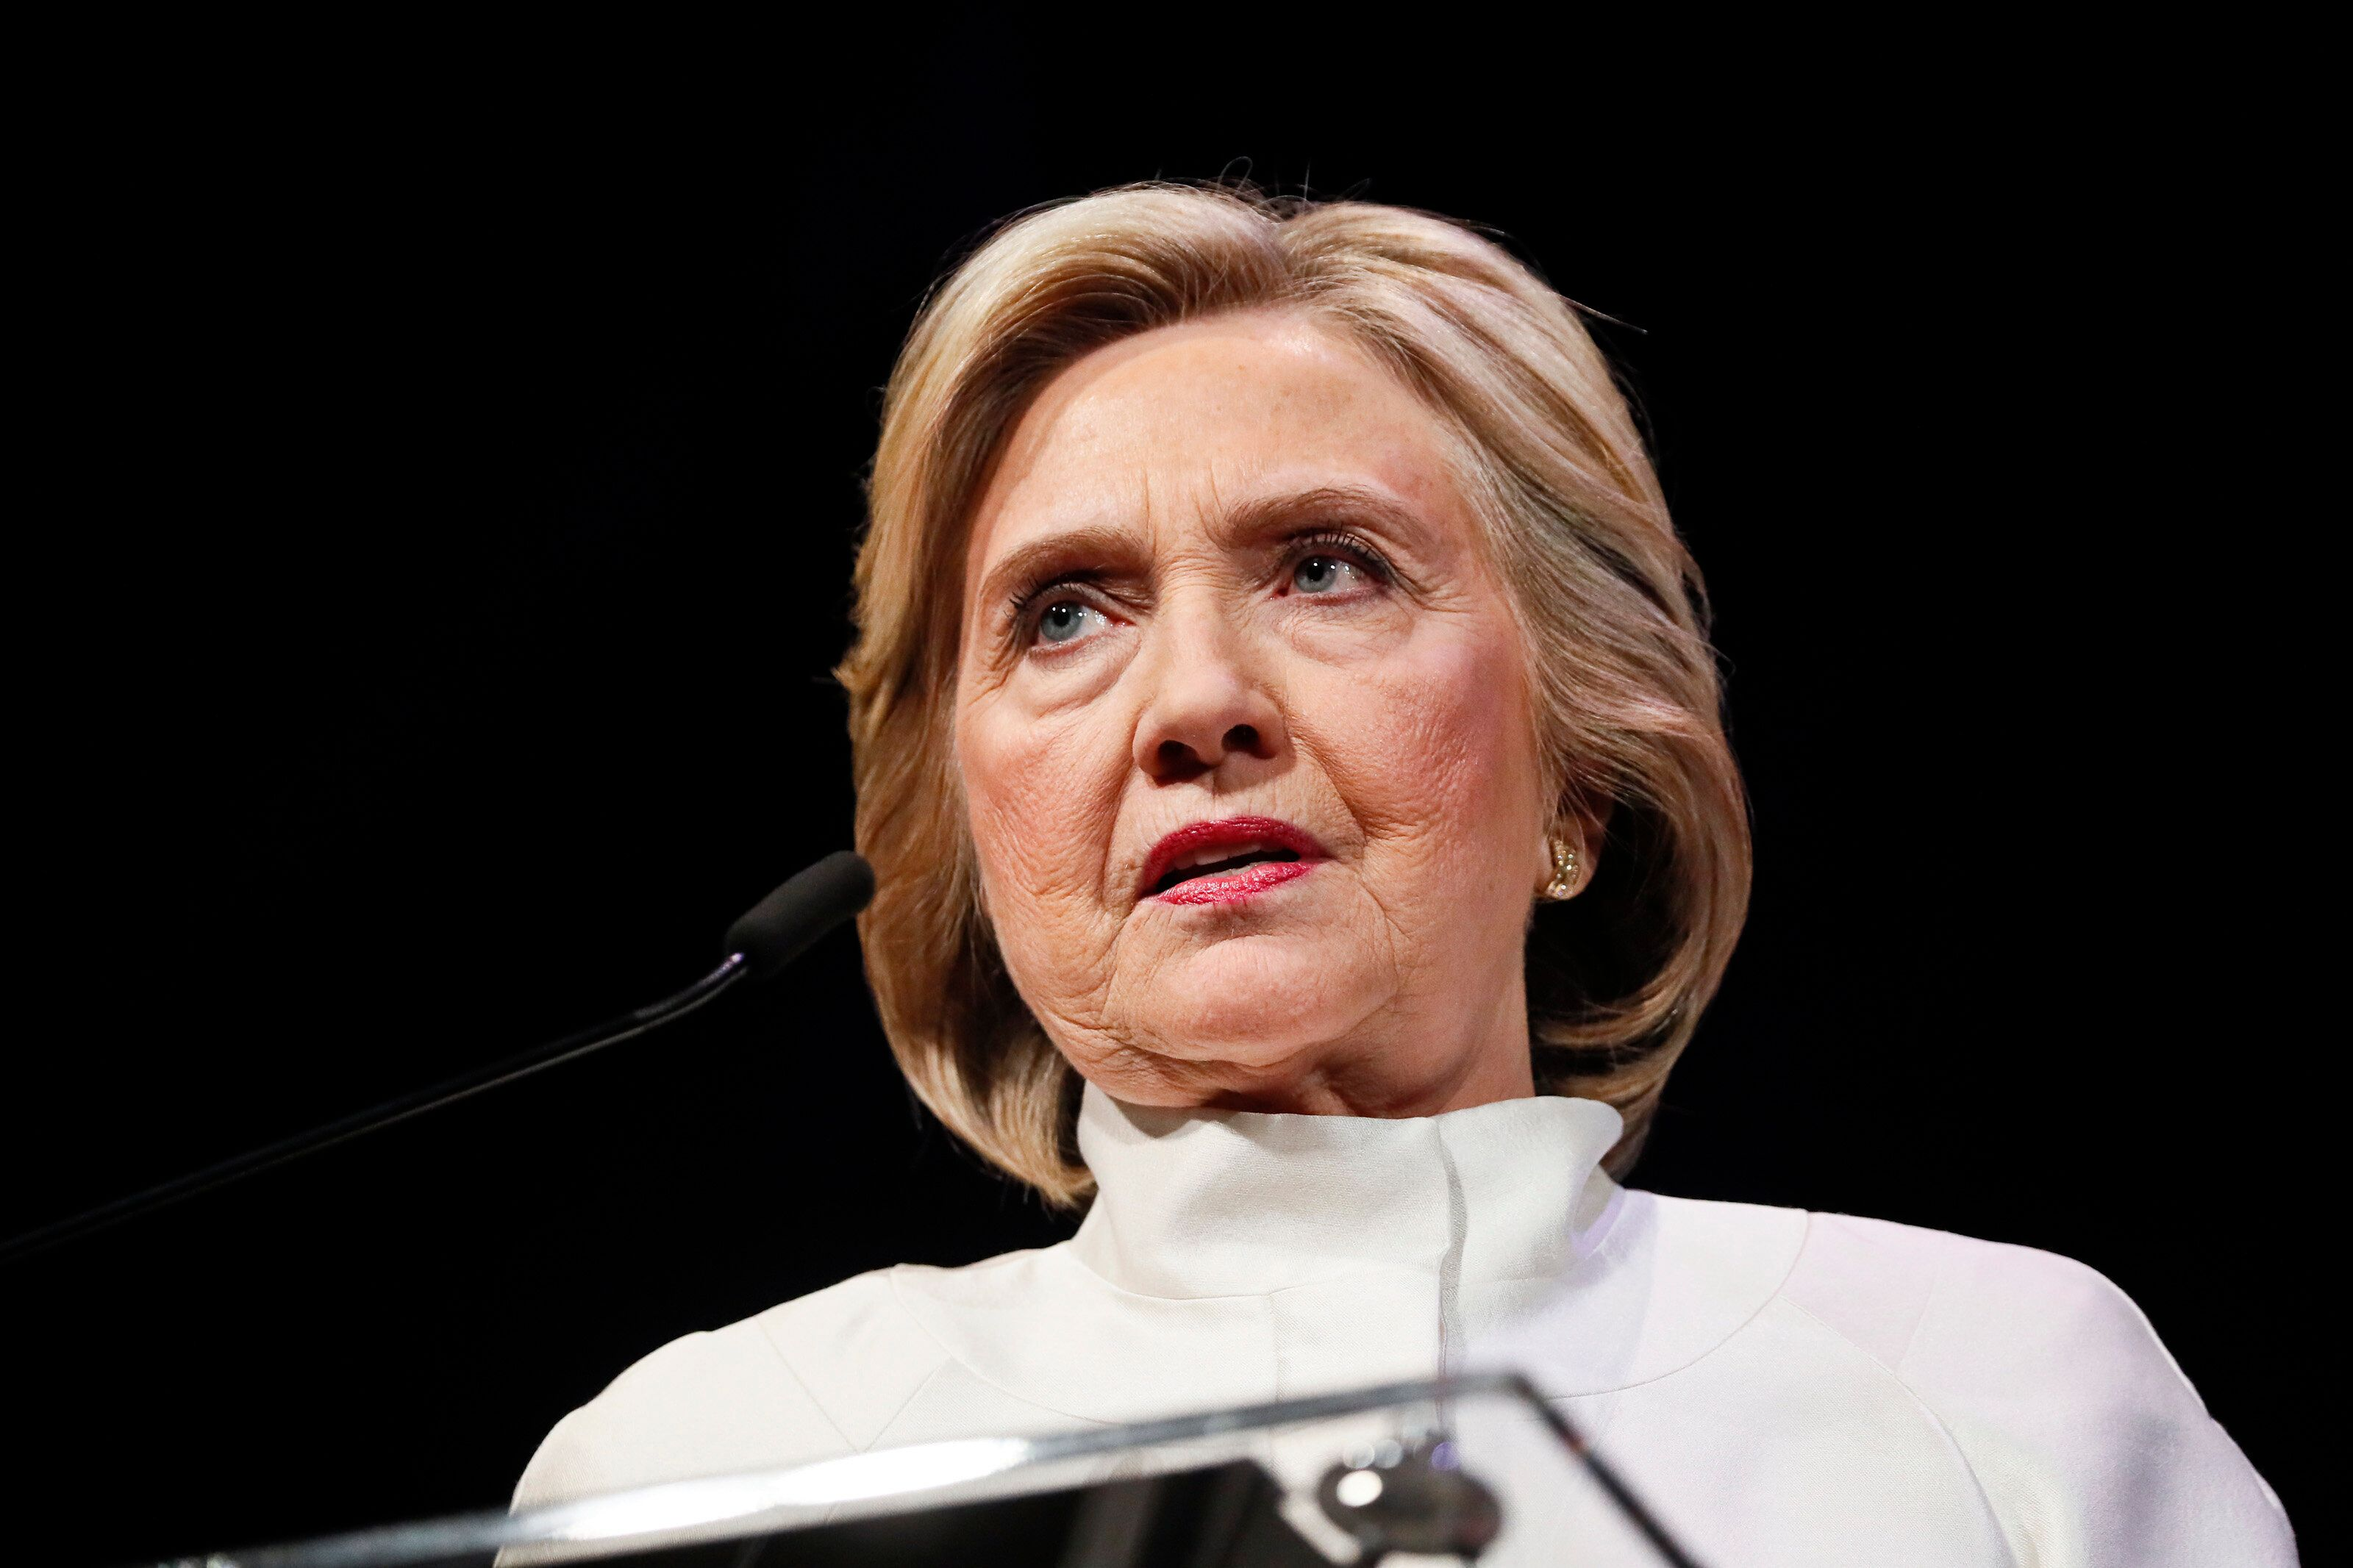 WASHINGTON, DC - APRIL 24: Former Secretary of State Hillary Clinton speaks at the 18th annual Vital Voices Global Leadership Awards at The Kennedy Center on April 24, 2019 in Washington, DC. (Photo by Paul Morigi/Getty Images)